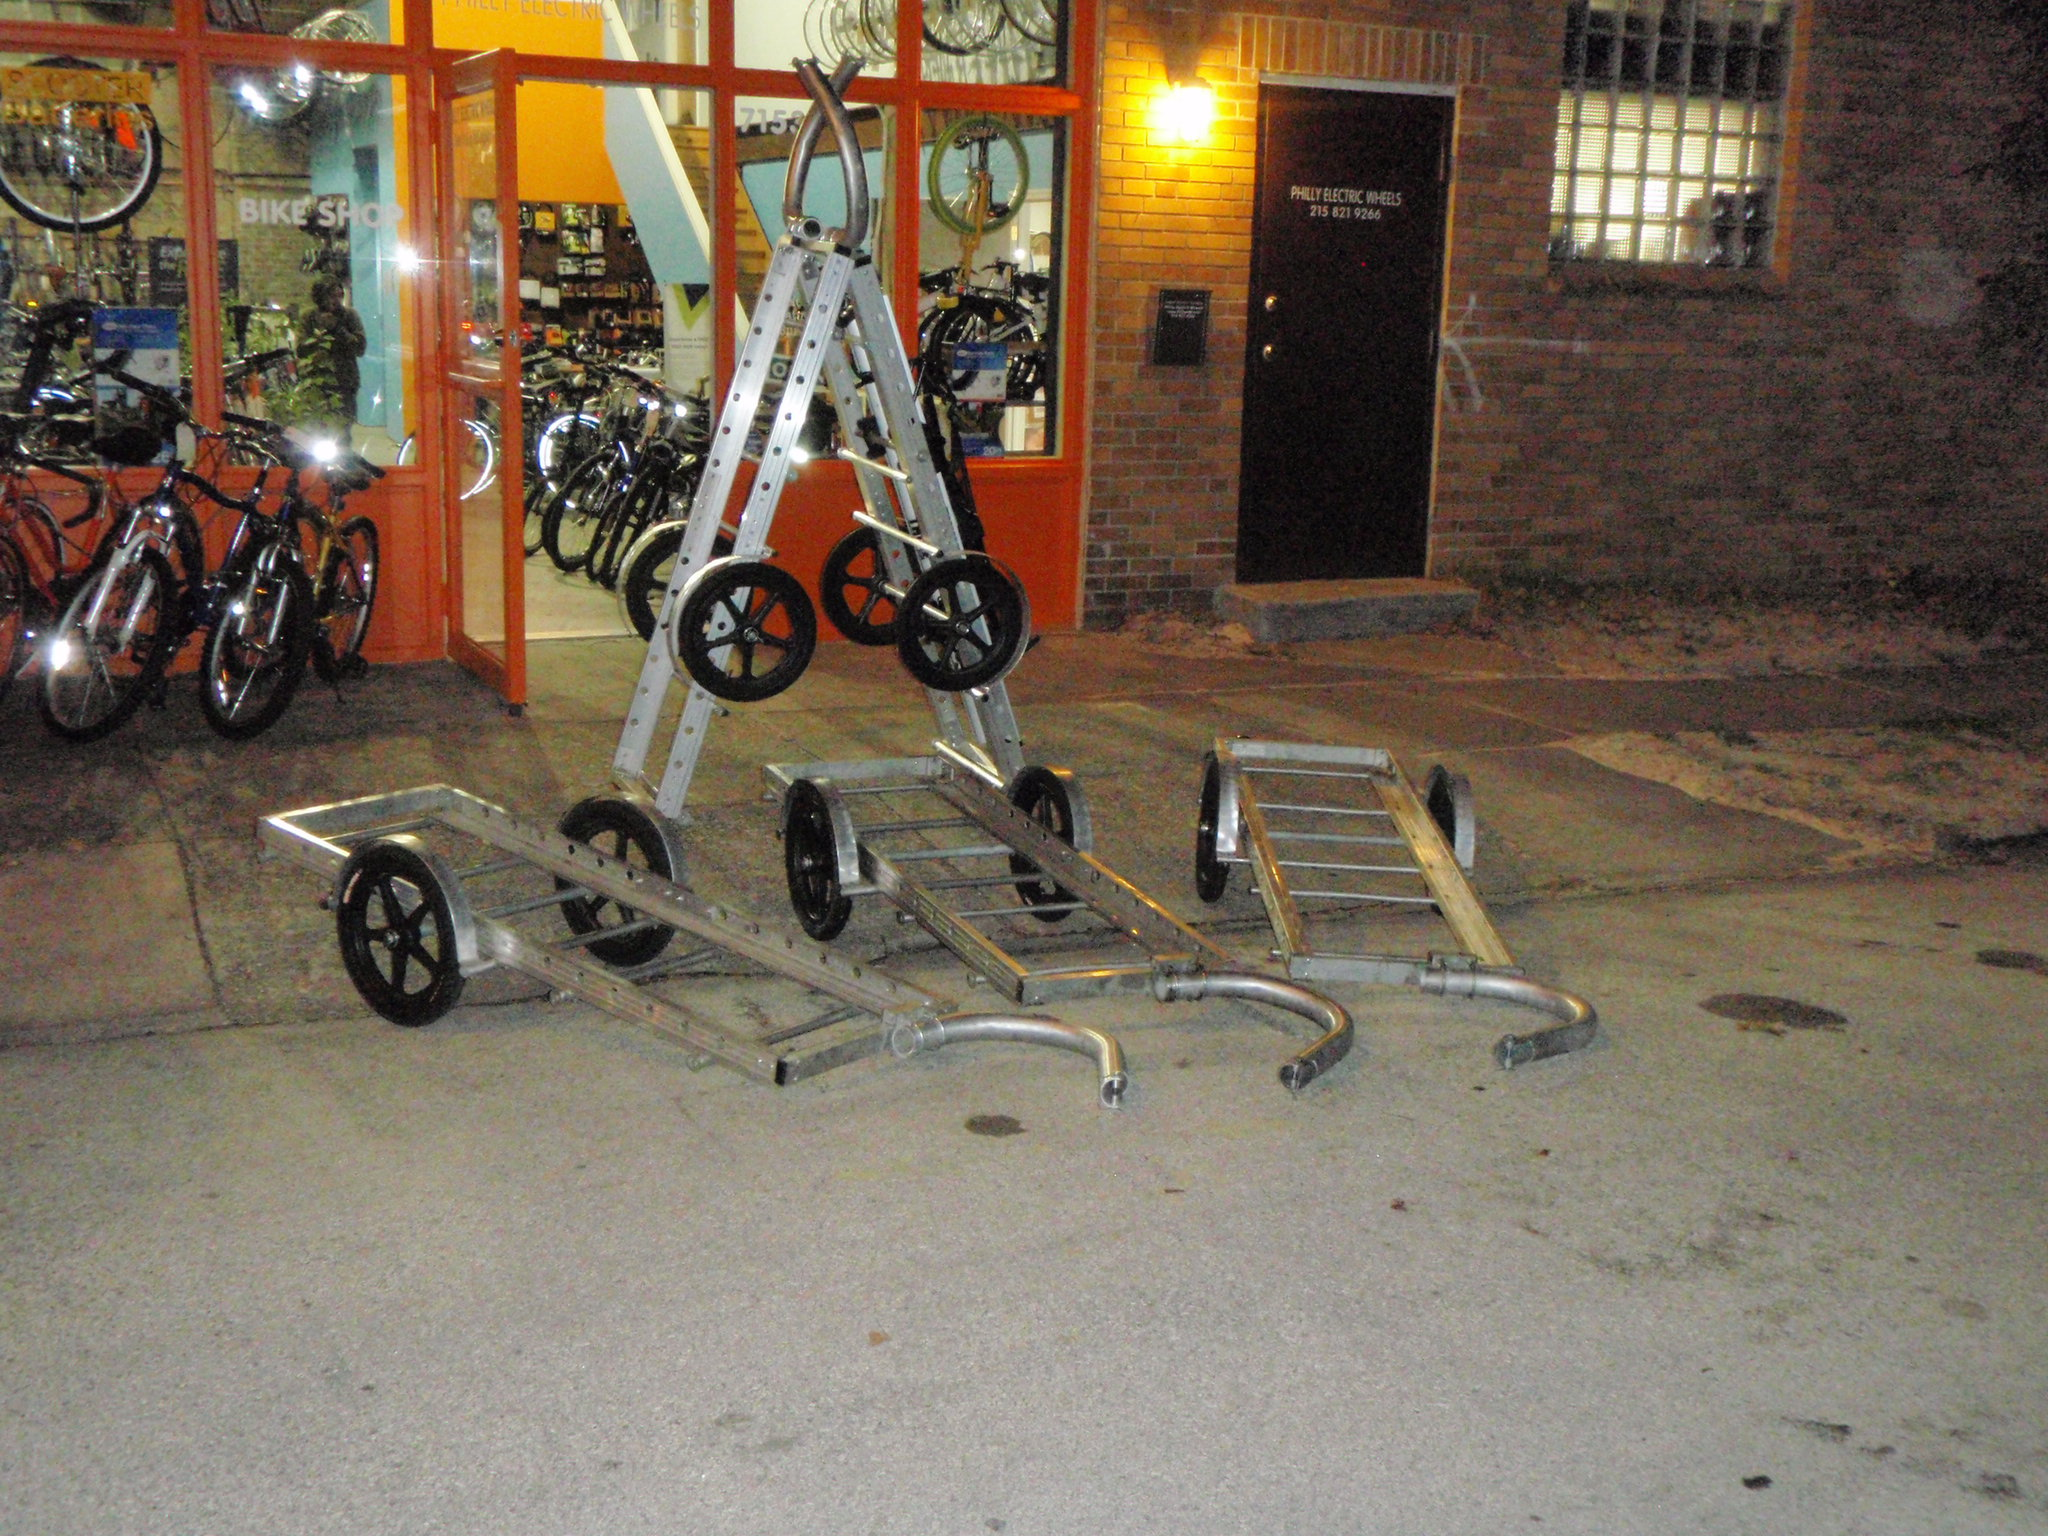 Bikes At Work Trailers Bicycle trailers enhance your